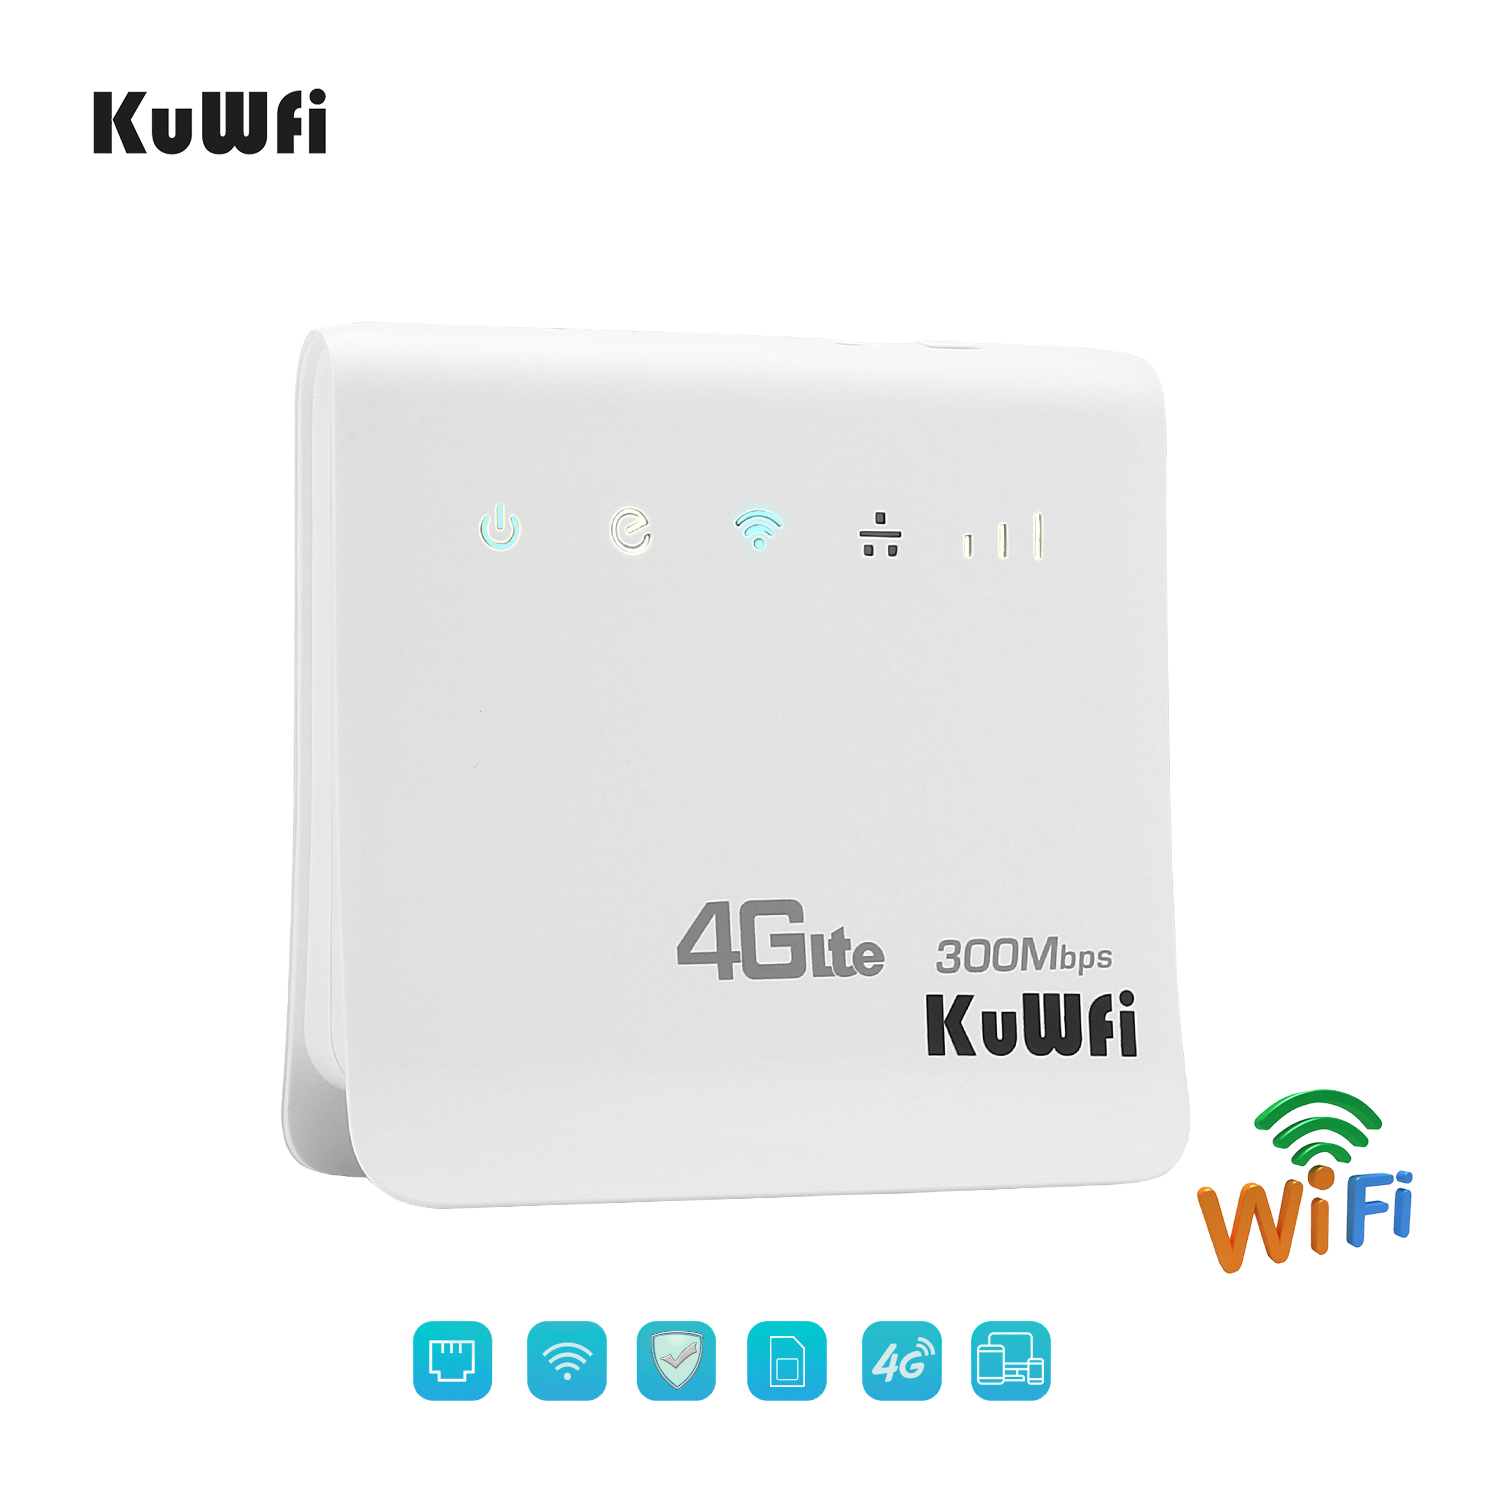 Unlocked 300Mbps Wifi Routers 4G LTE CPE Mobile Router with LAN Port Support SIM card and Europe/Asia/Middle East/AfricaUnlocked 300Mbps Wifi Routers 4G LTE CPE Mobile Router with LAN Port Support SIM card and Europe/Asia/Middle East/Africa